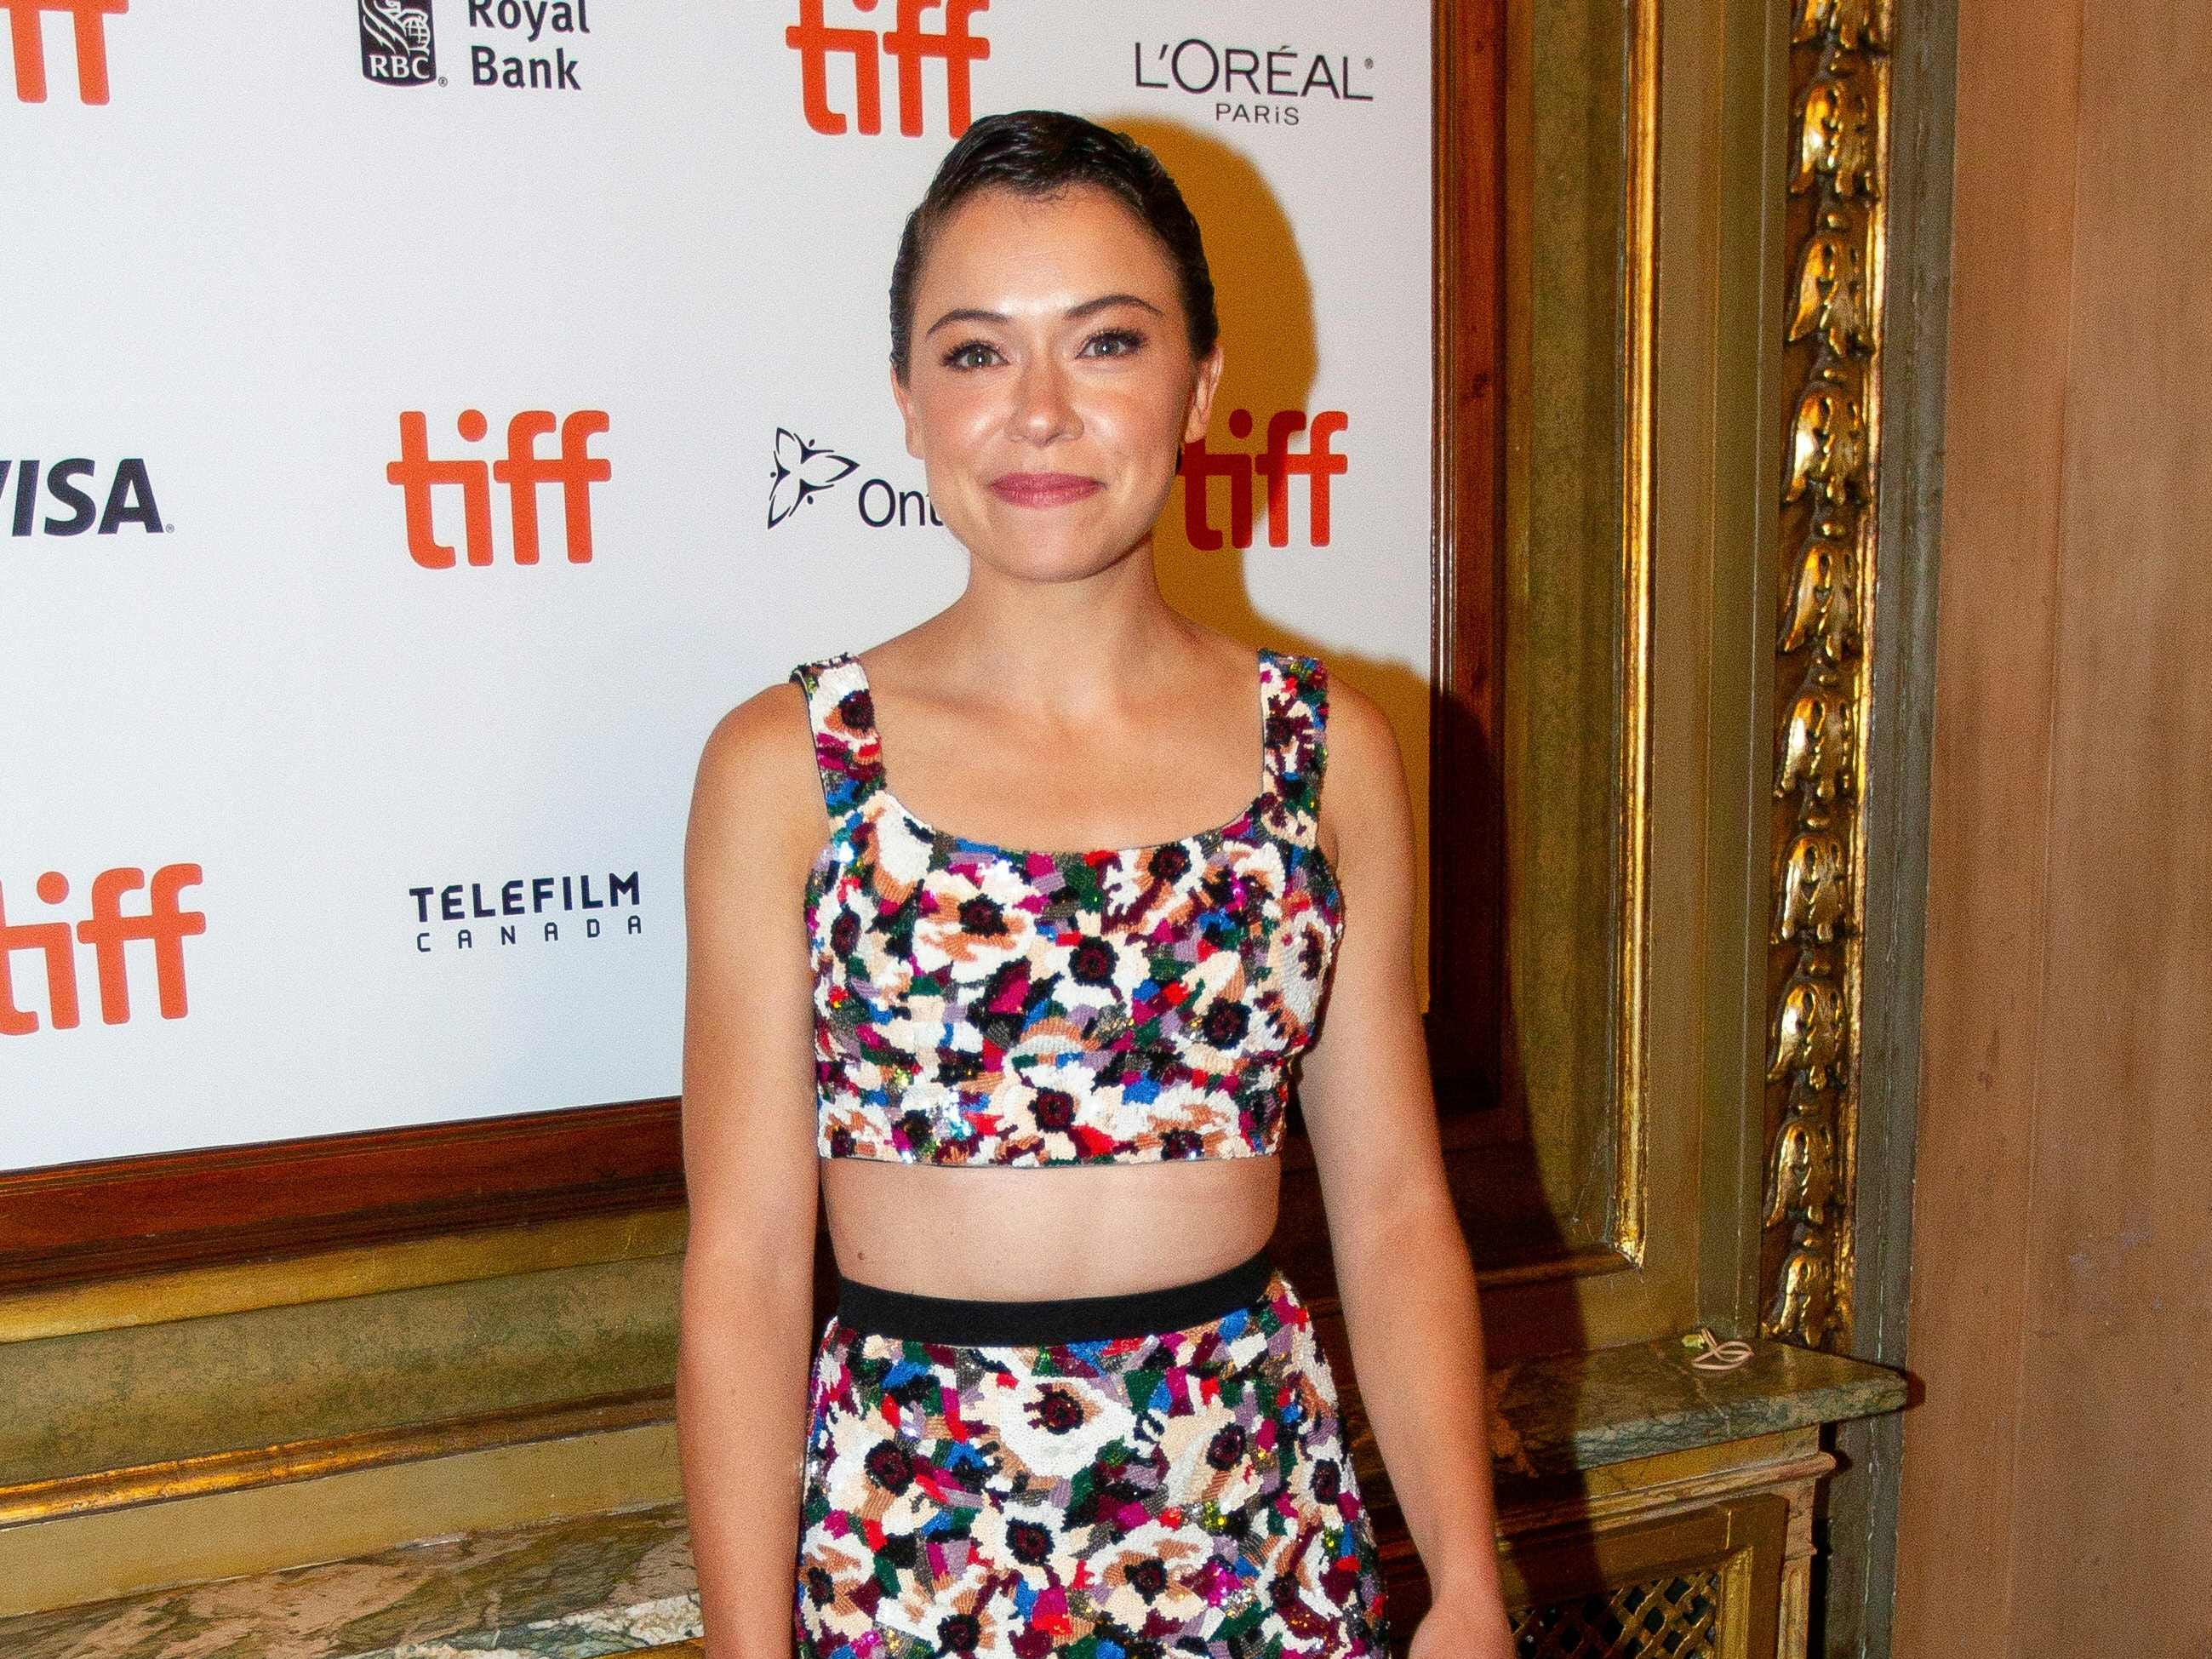 Canadian actress Tatiana Maslany attends the premiere of 'The Old Man and the Gun' at the Toronto International Film Festival in Toronto, Ontario, Canada on September 10, 2018. (Photo by Geoff Robins / AFP)GEOFF ROBINS/AFP/Getty Images ORG XMIT: Toronto i ORIG FILE ID: AFP_19042M